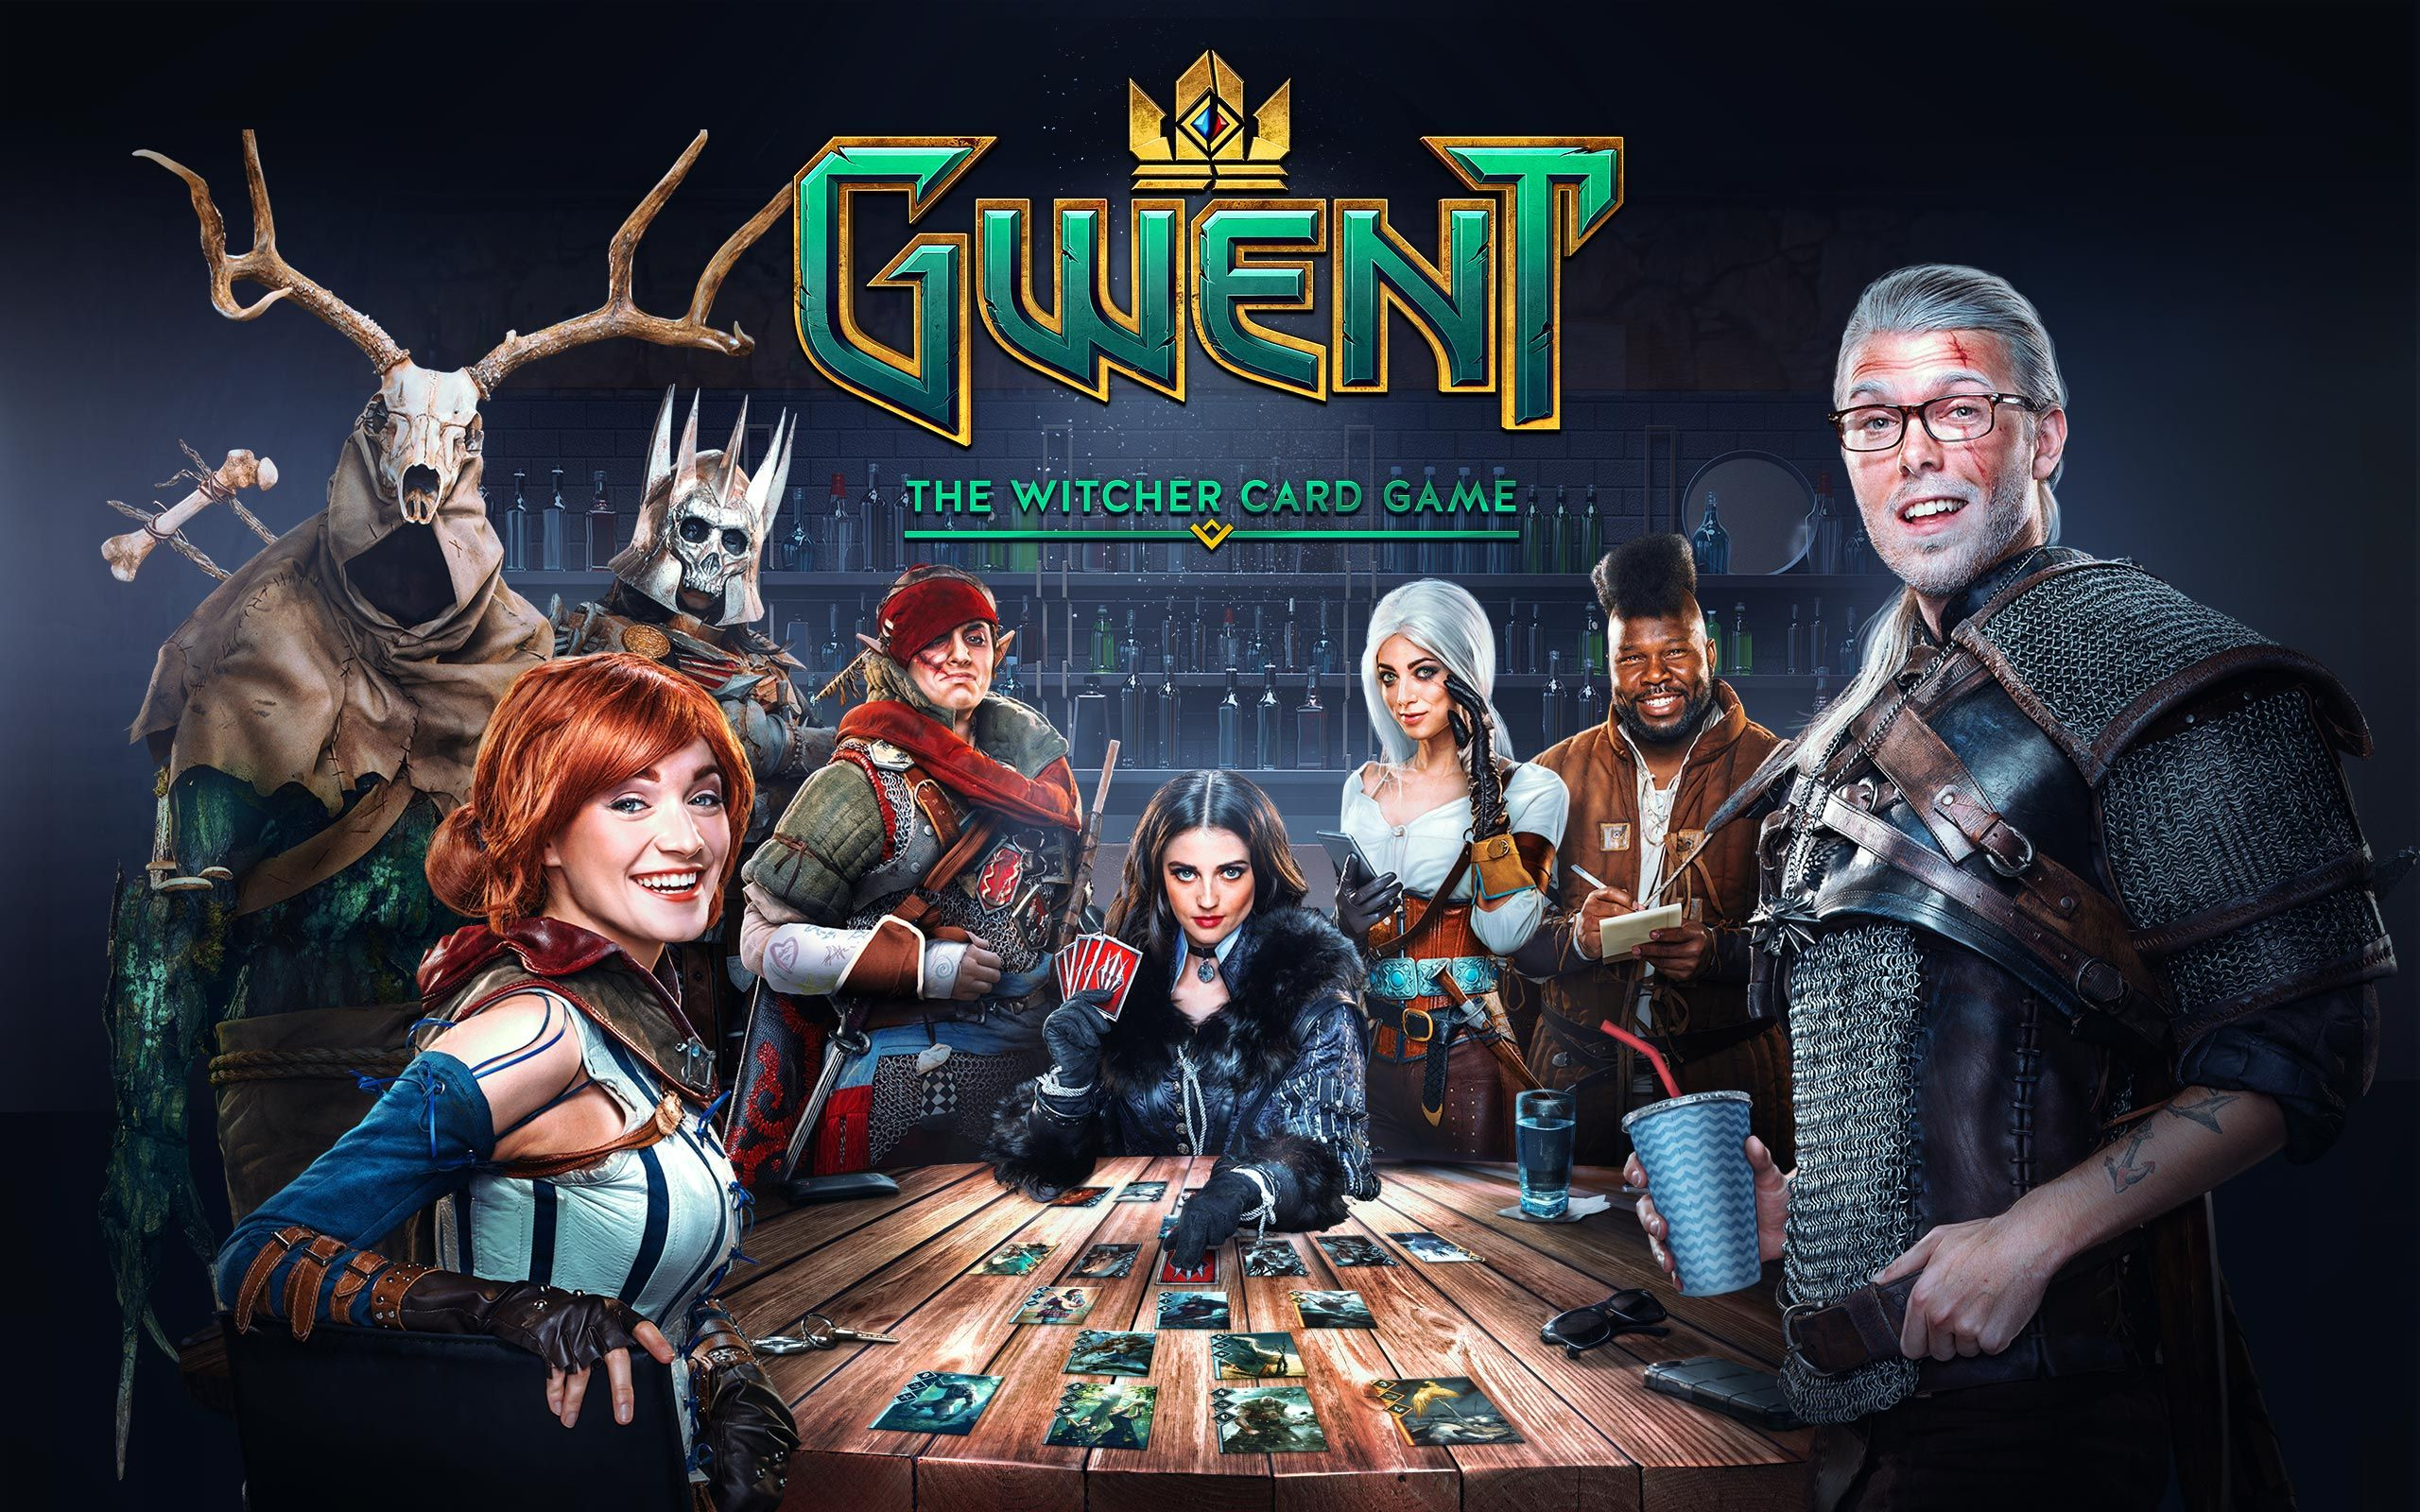 Gwent The Witcher Card Game The Witcher Card Games The Witcher 3